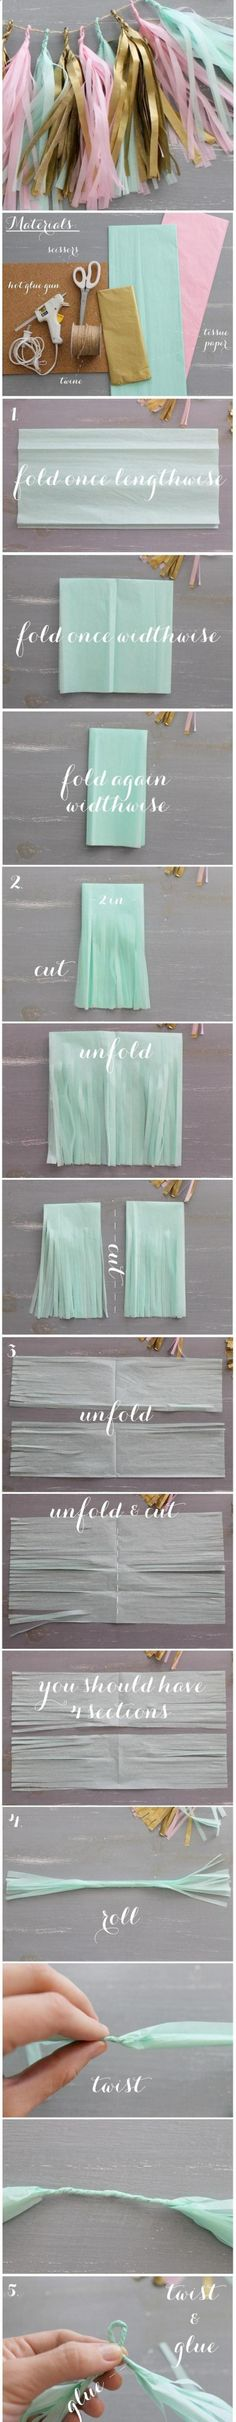 how to make tassel garland                                                                                                                                                                                 More